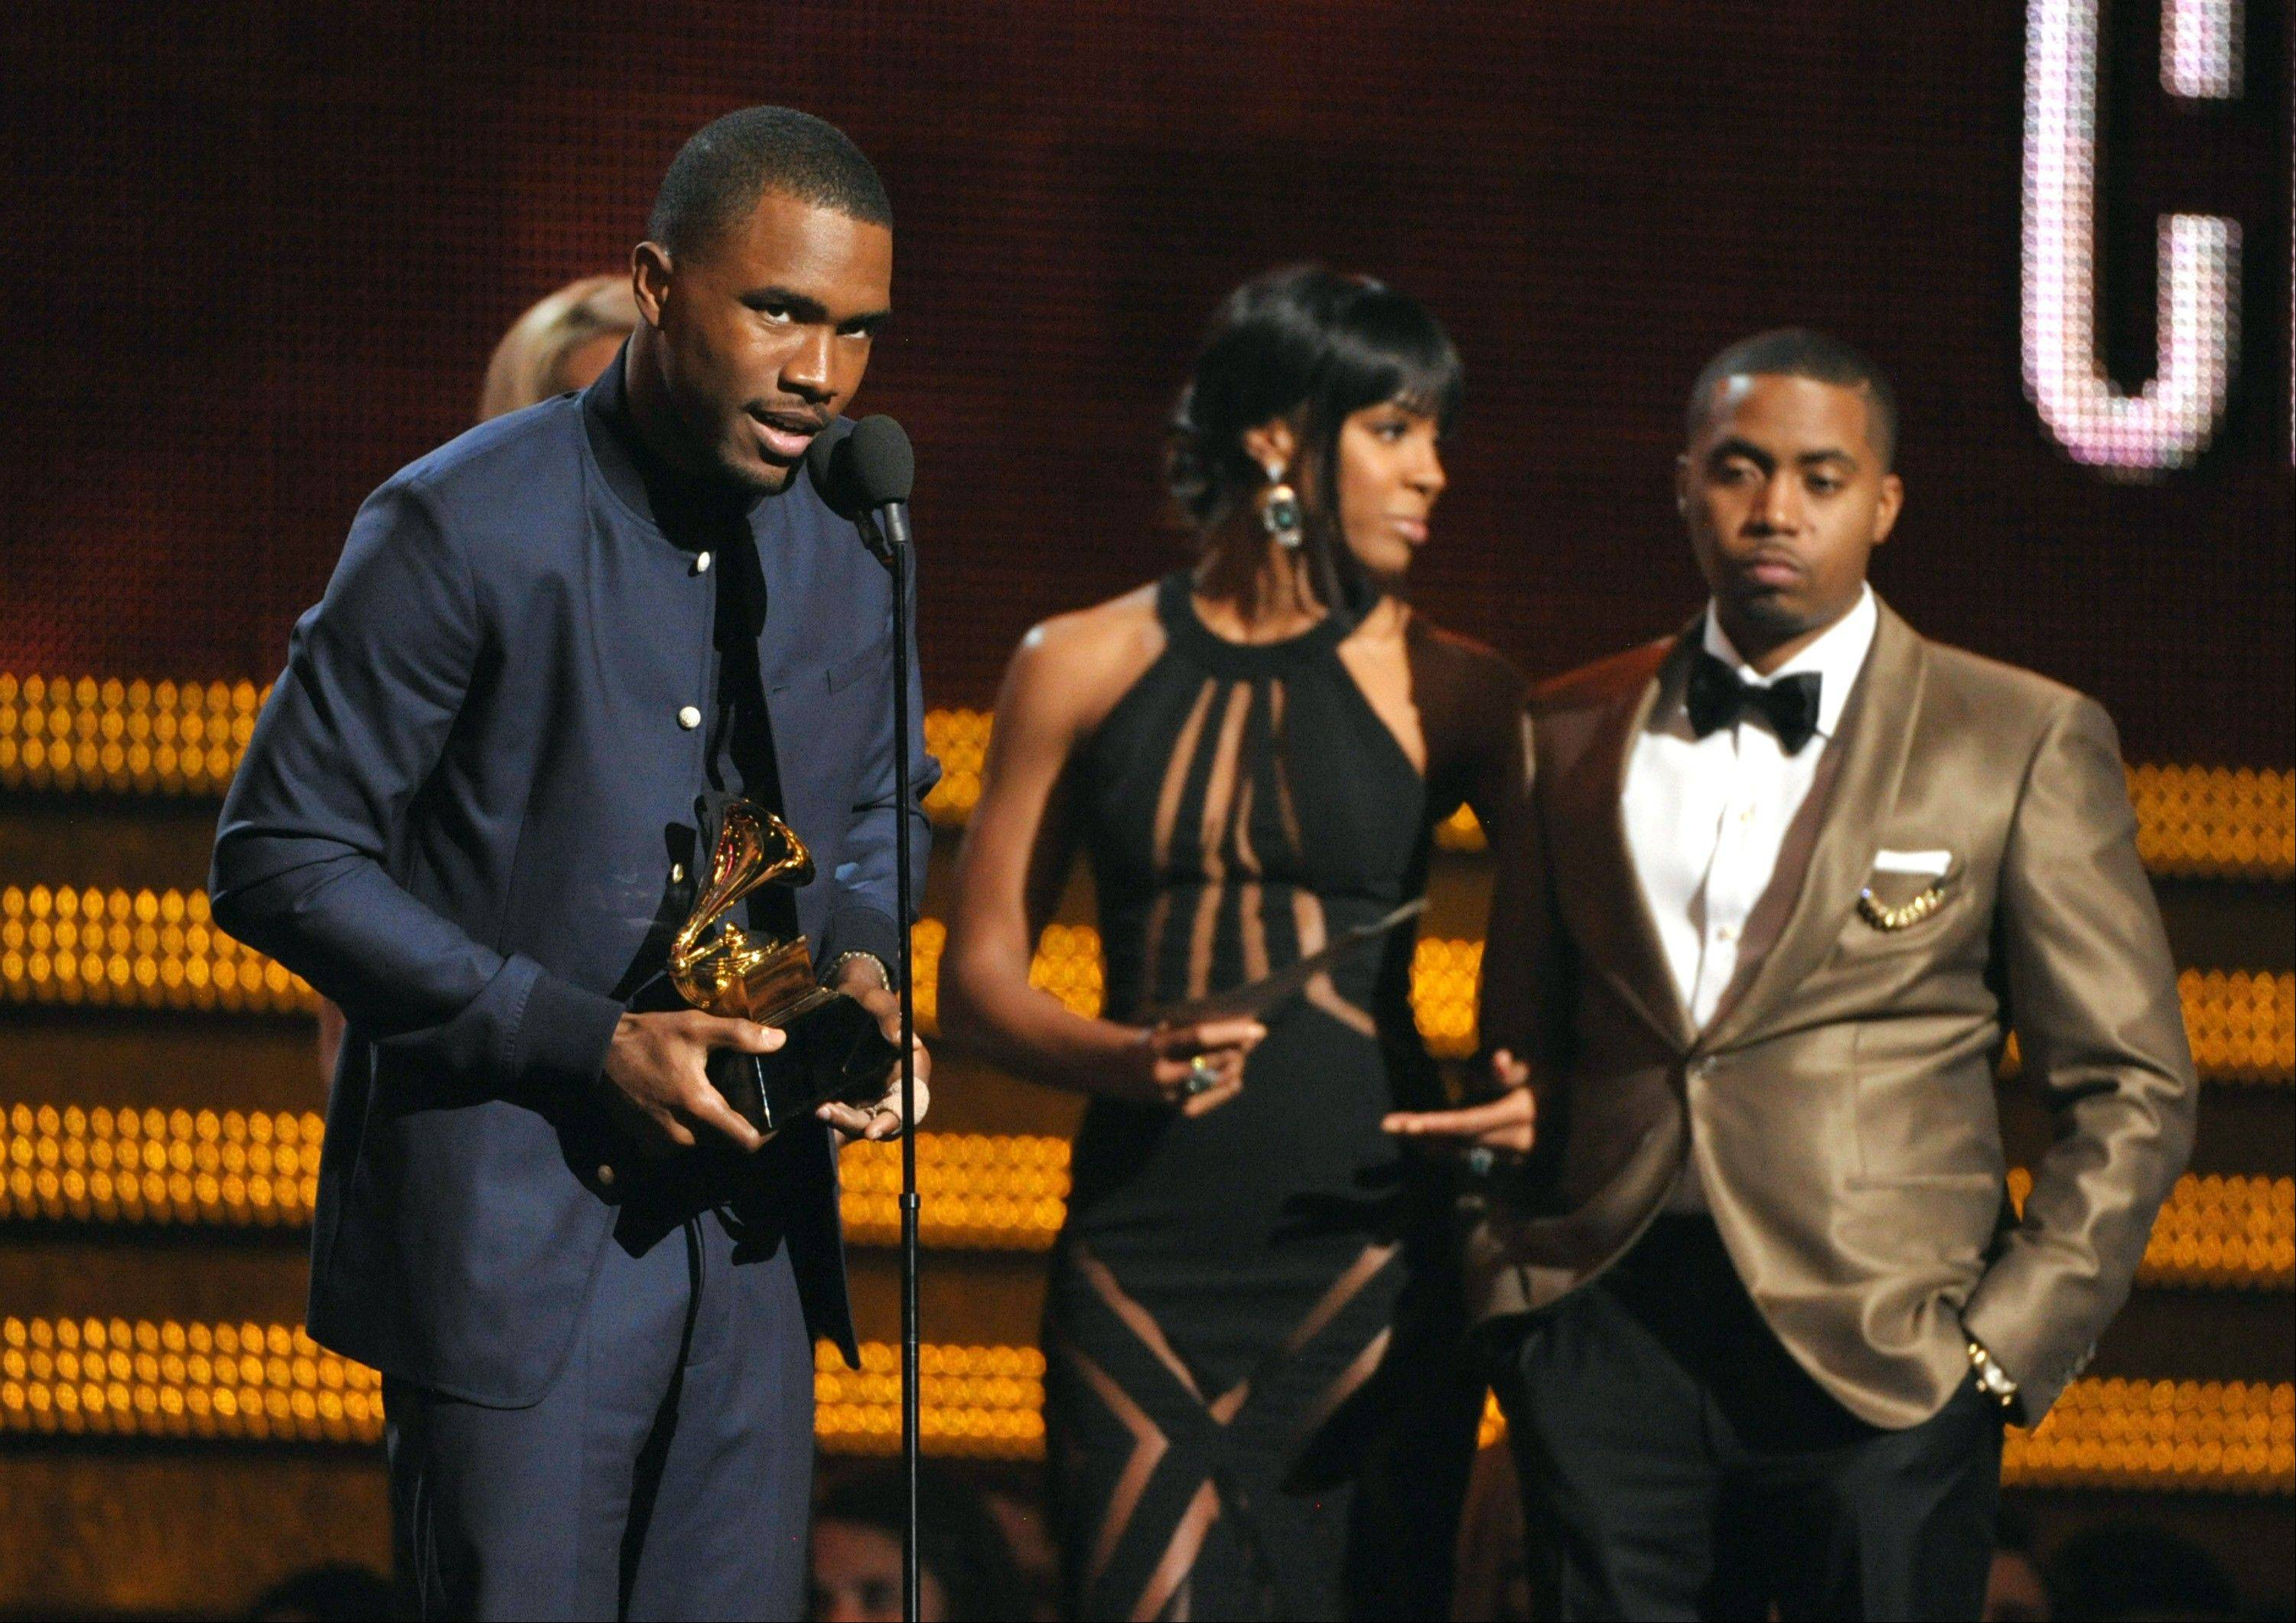 Frank Ocean accepts the award for best urban contemporary album at the 55th annual Grammy Awards on Sunday, Feb. 10, 2013, in Los Angeles. Looking on from right presenters Kelly Rowland and Nas.